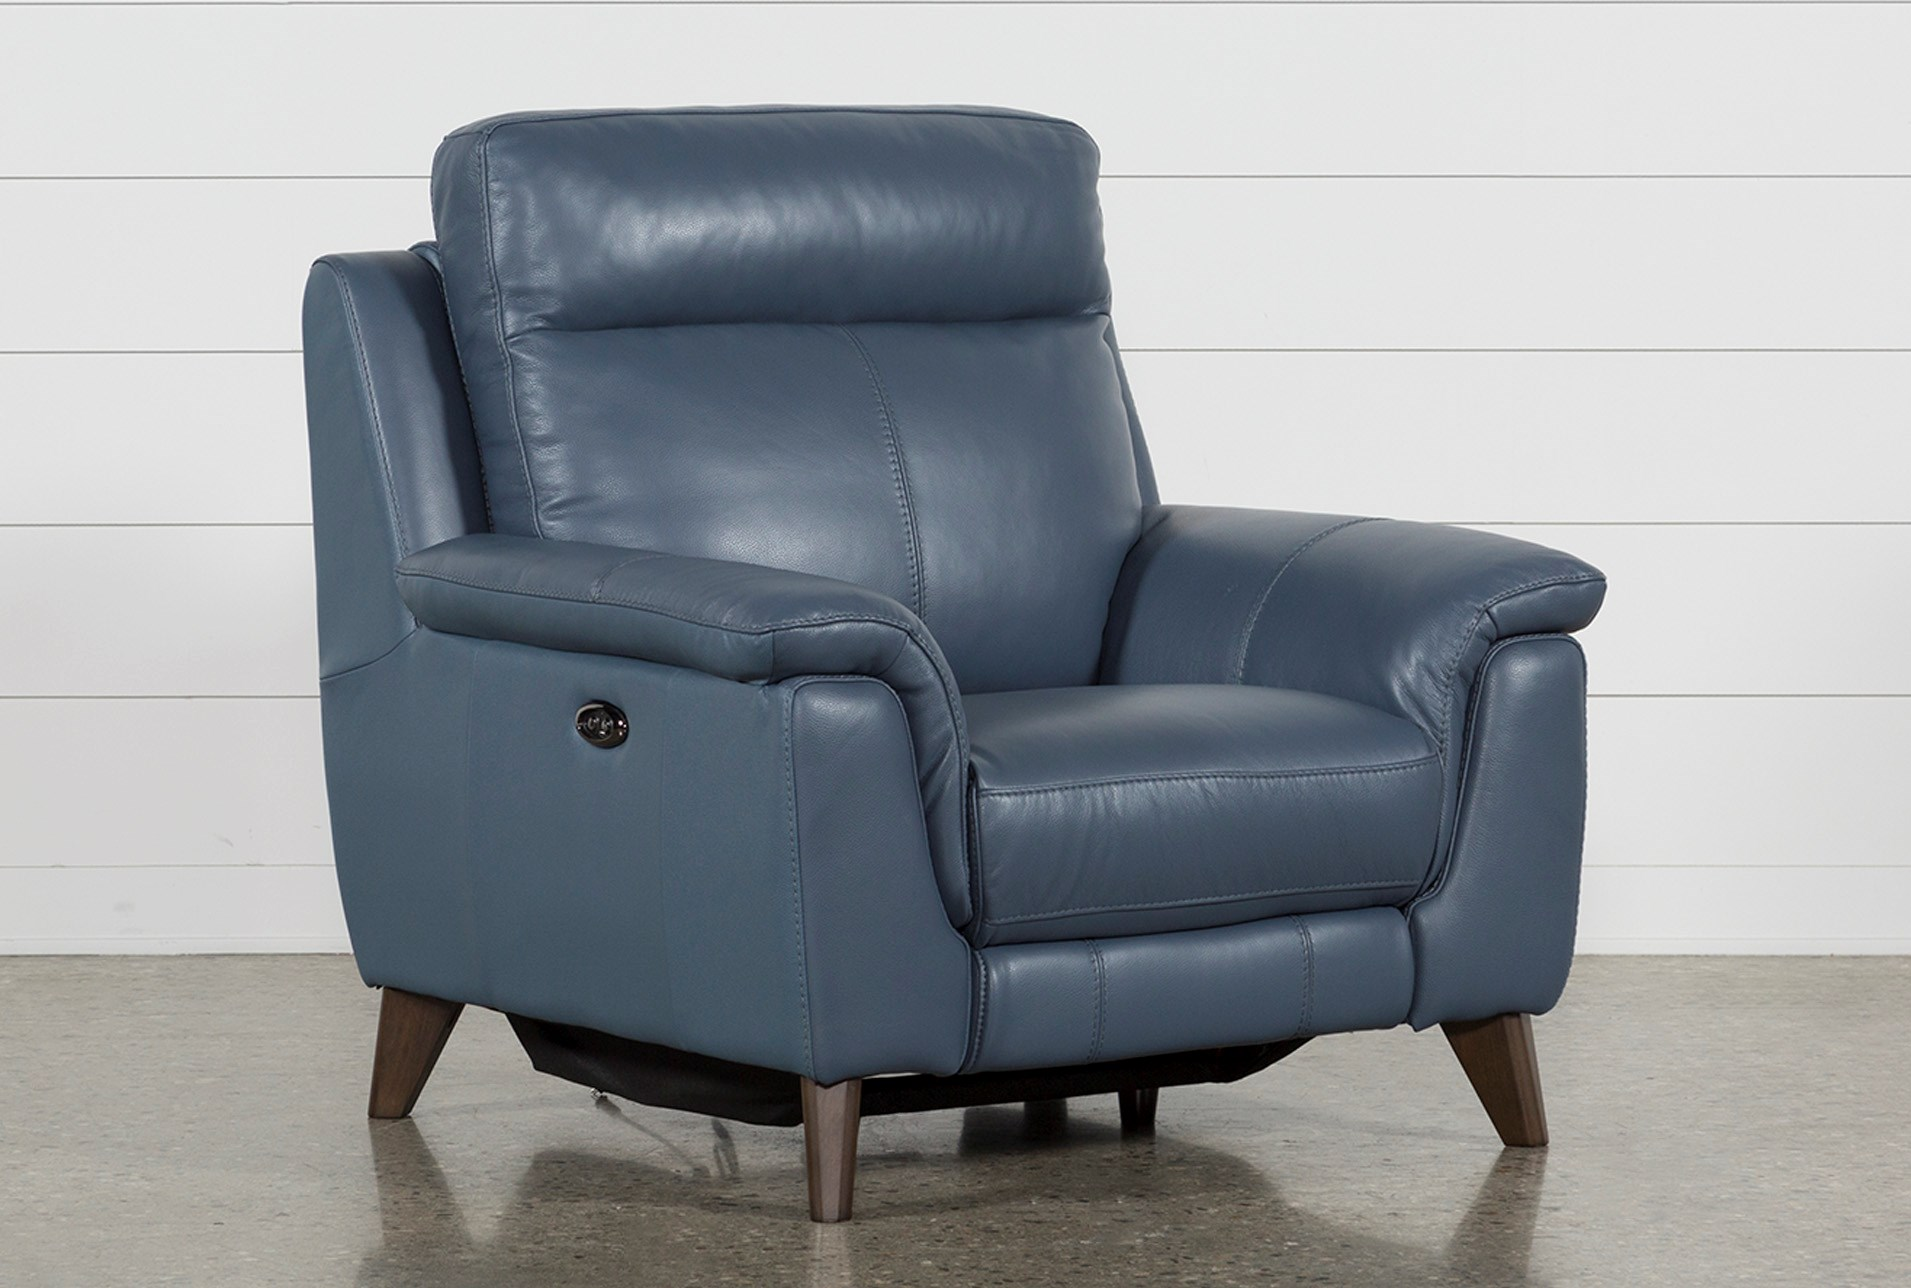 Fabulous Moana Blue Leather Power Reclining Chair With Usb Ibusinesslaw Wood Chair Design Ideas Ibusinesslaworg